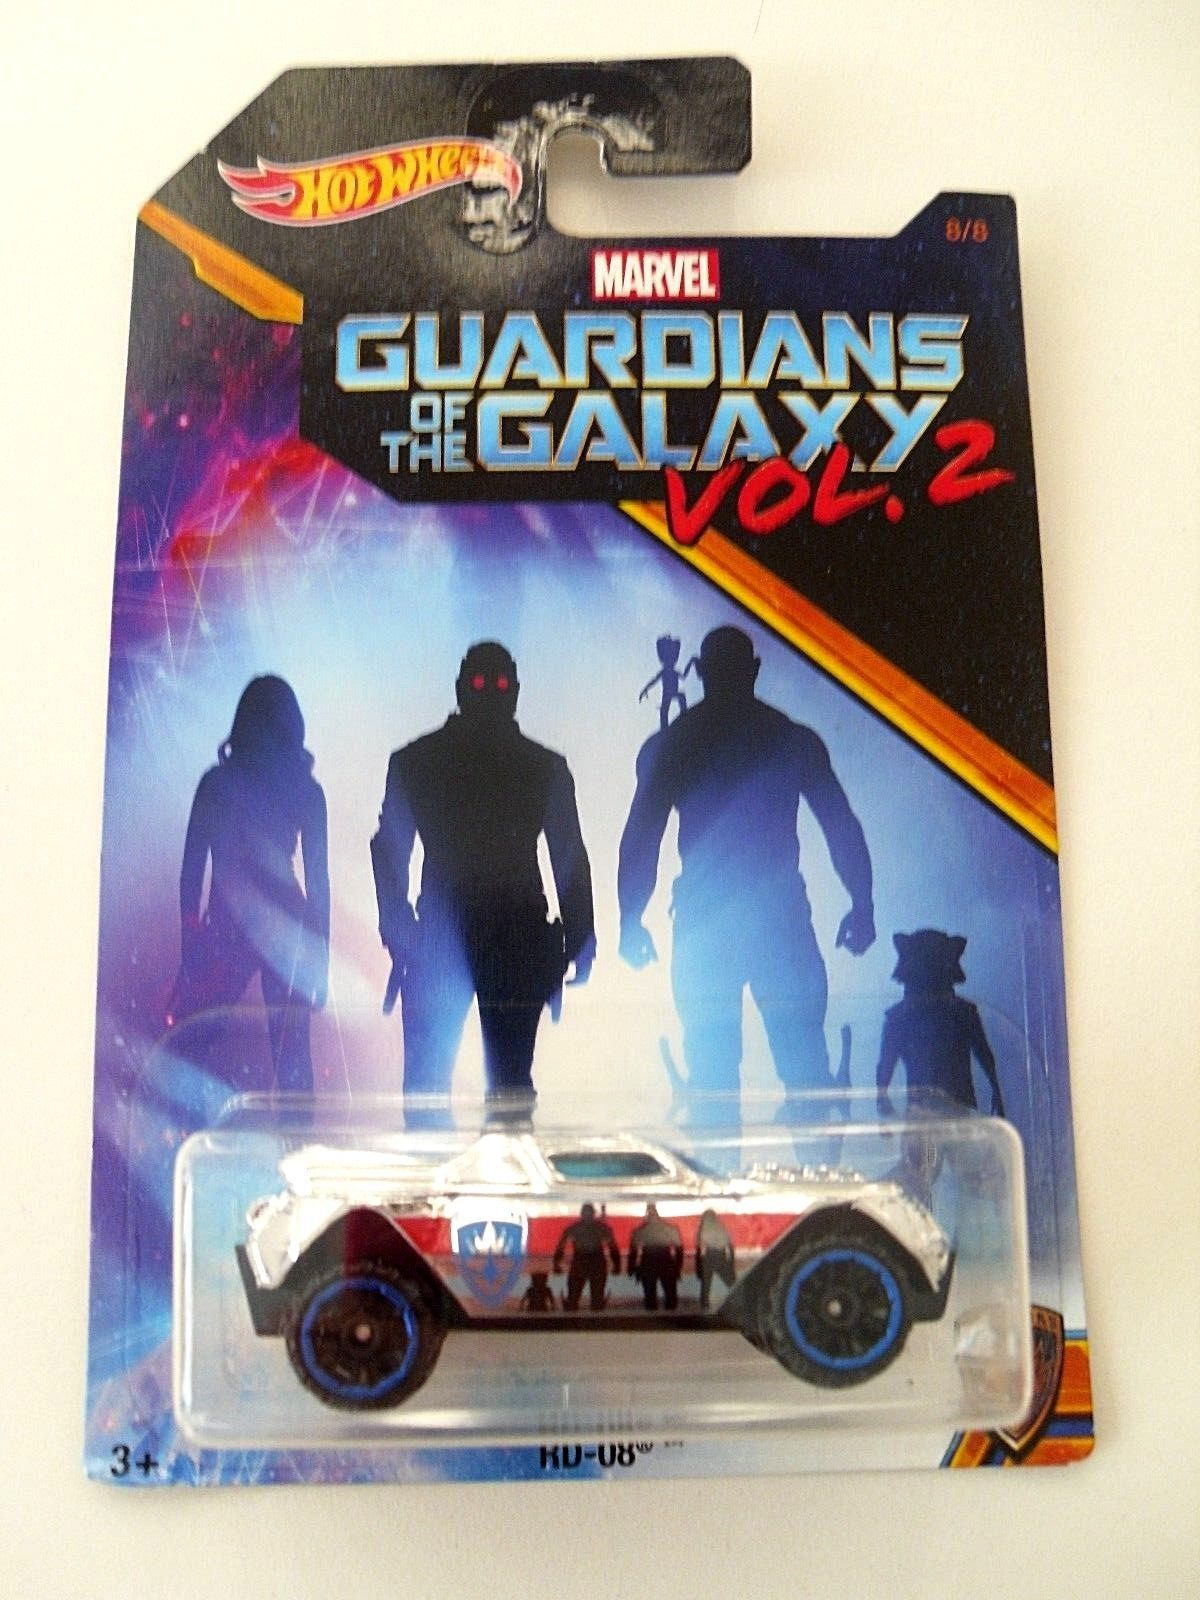 HOT WHEELS MARVEL GUARDIANS OF THE GALAXY VOL 2 RD-08 8/8